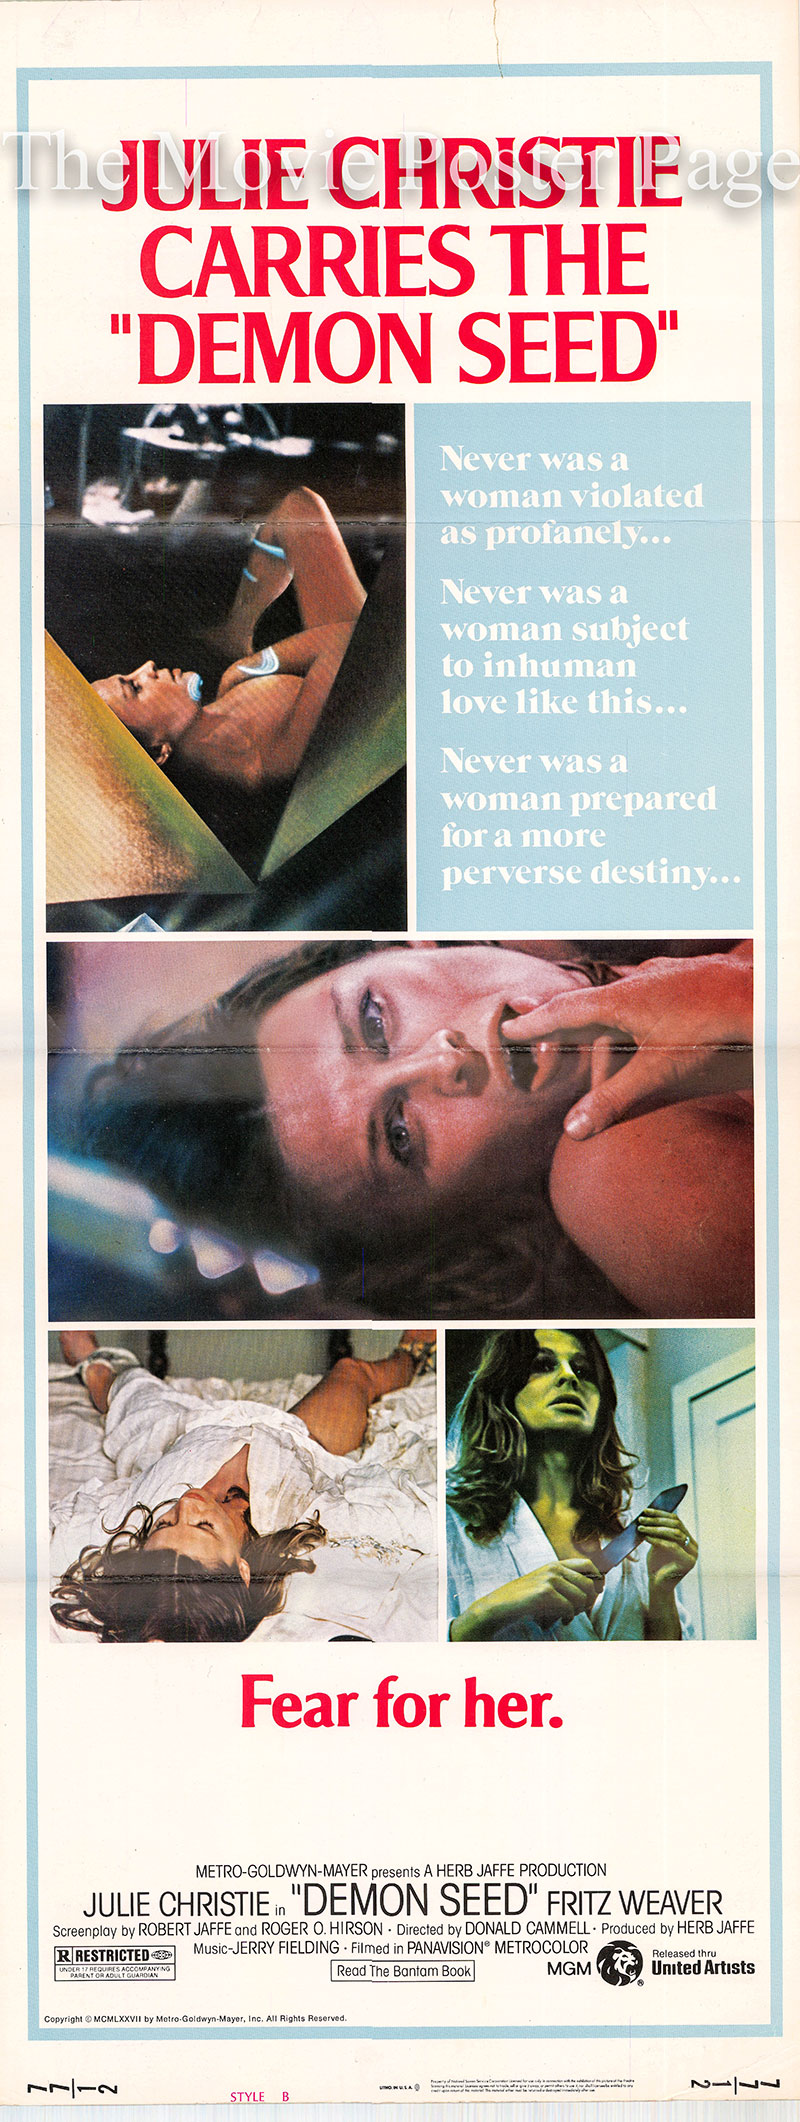 Pictured is a US insert poster for the 1977 Donald Cammell film Demon Seed starring Julie Christie as Susan Harris.